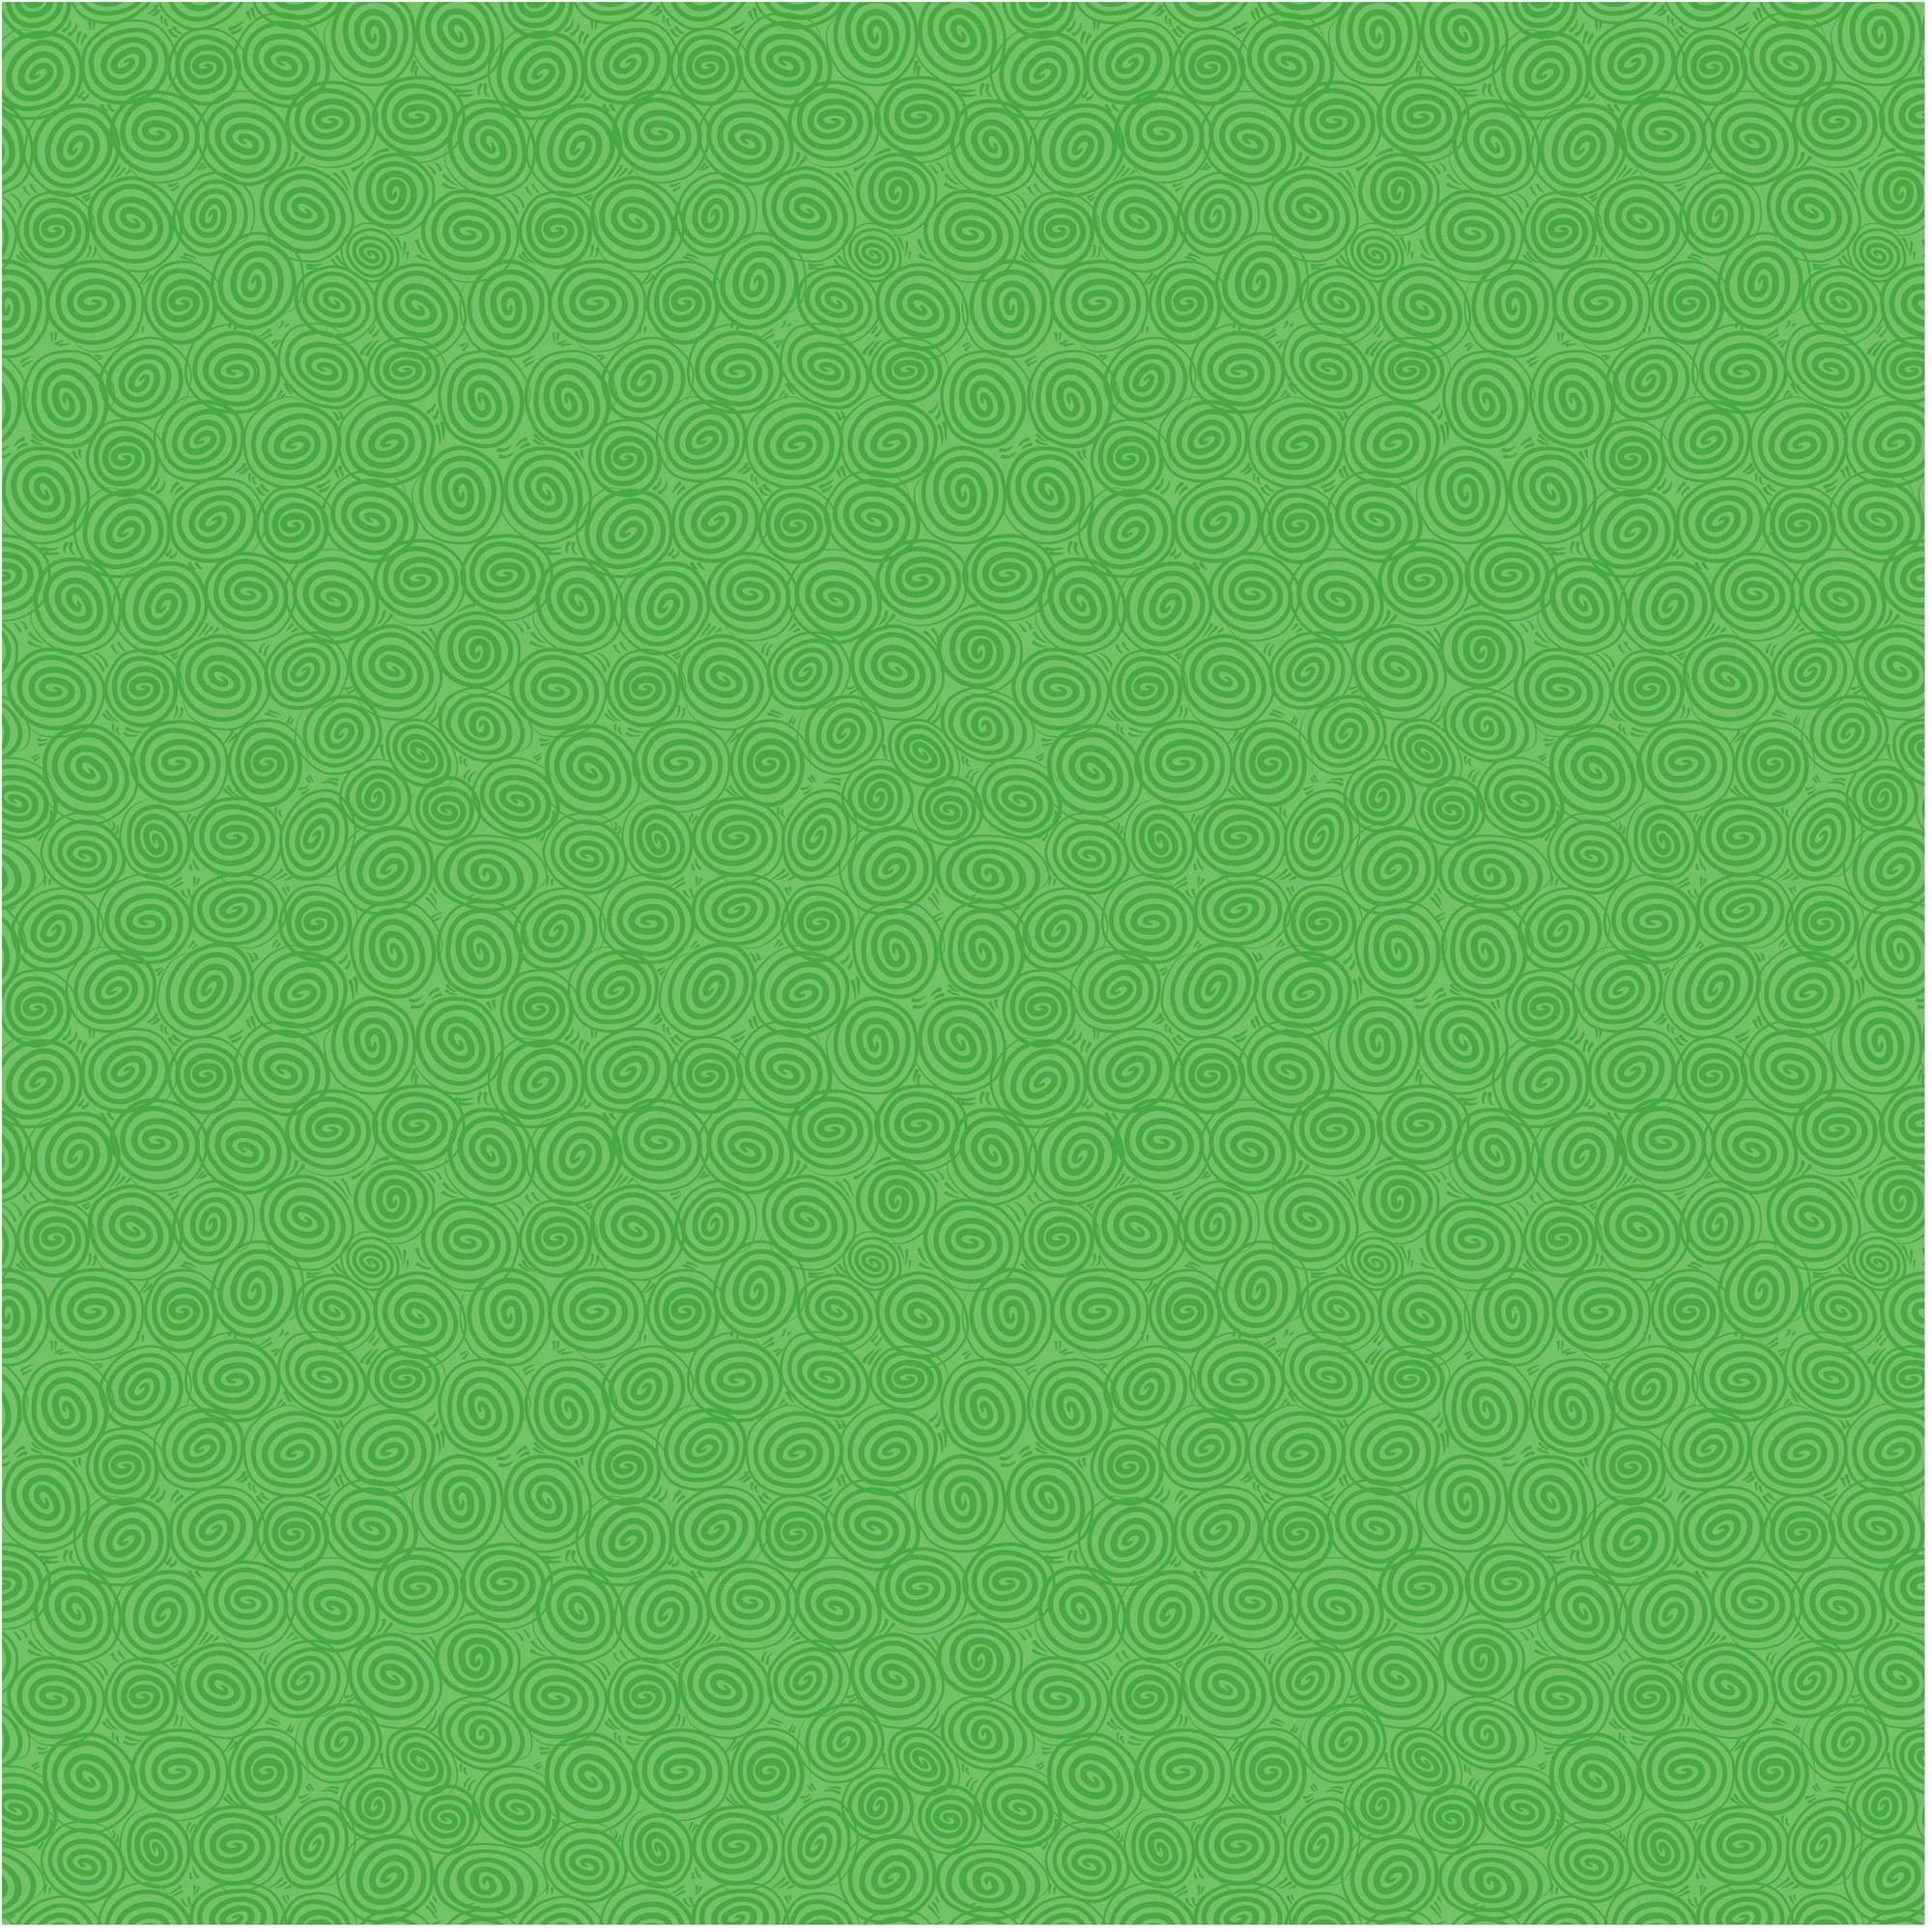 "Waverly Inspirations Cotton 44"" Sarah's Swirls Kelly Green Fabric, per Yard"